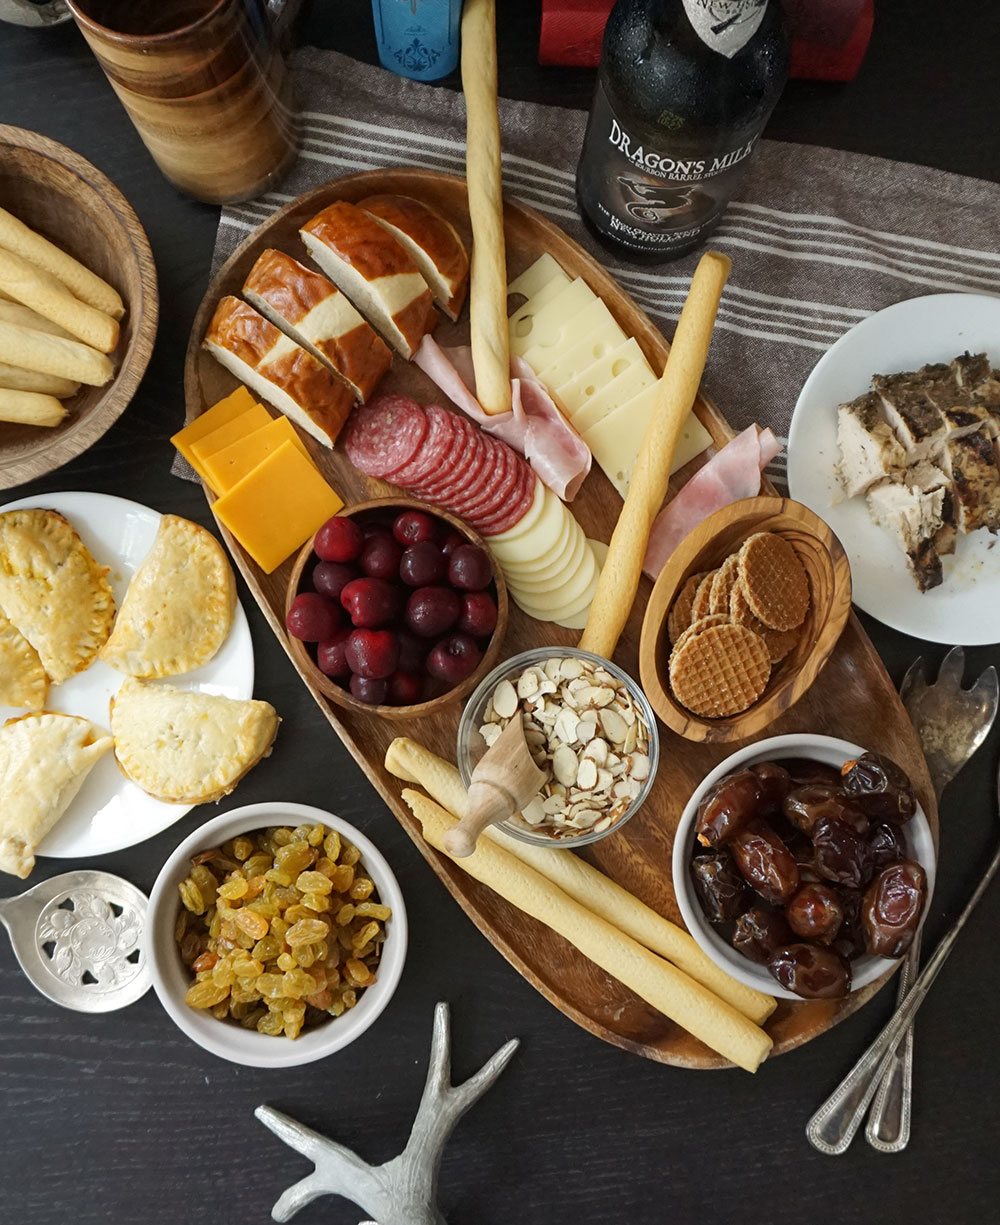 Game of Thrones menu -- Game of Thrones party from @bijouxandbits